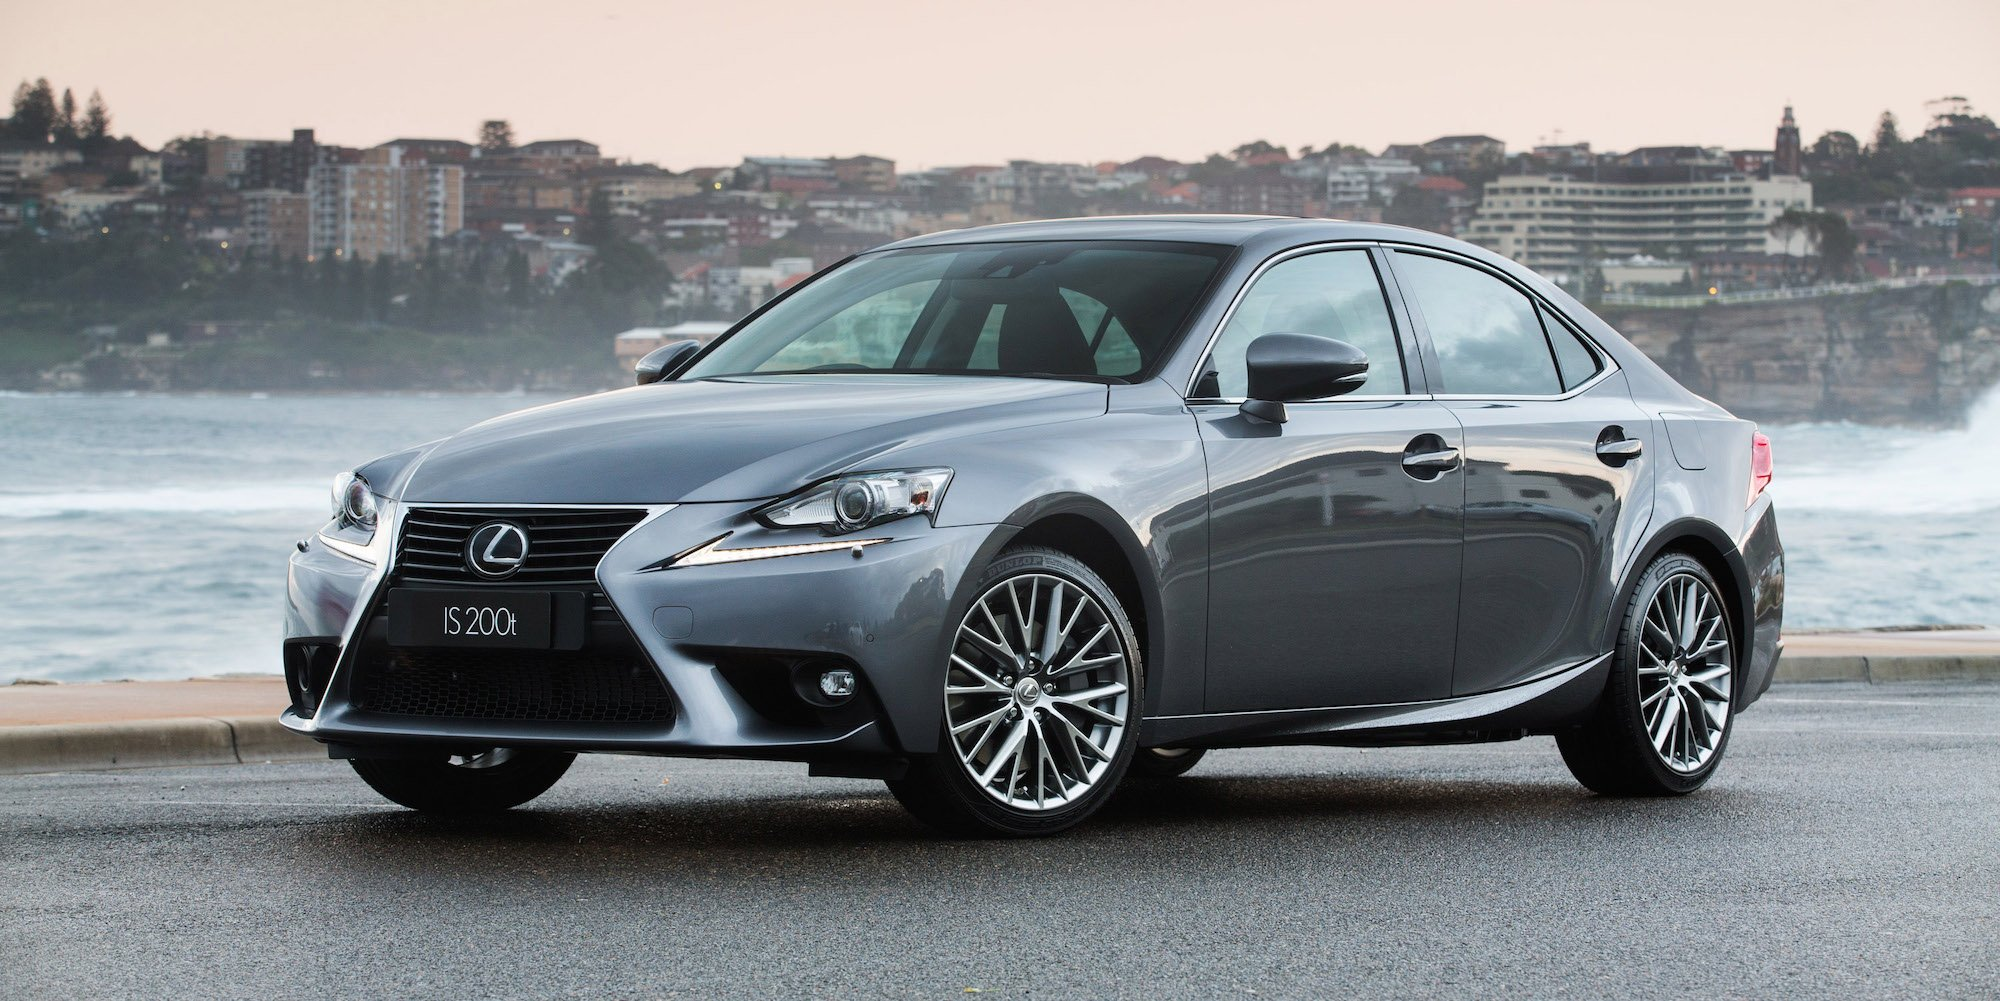 2016 lexus is pricing and specifications photos 1 of 15